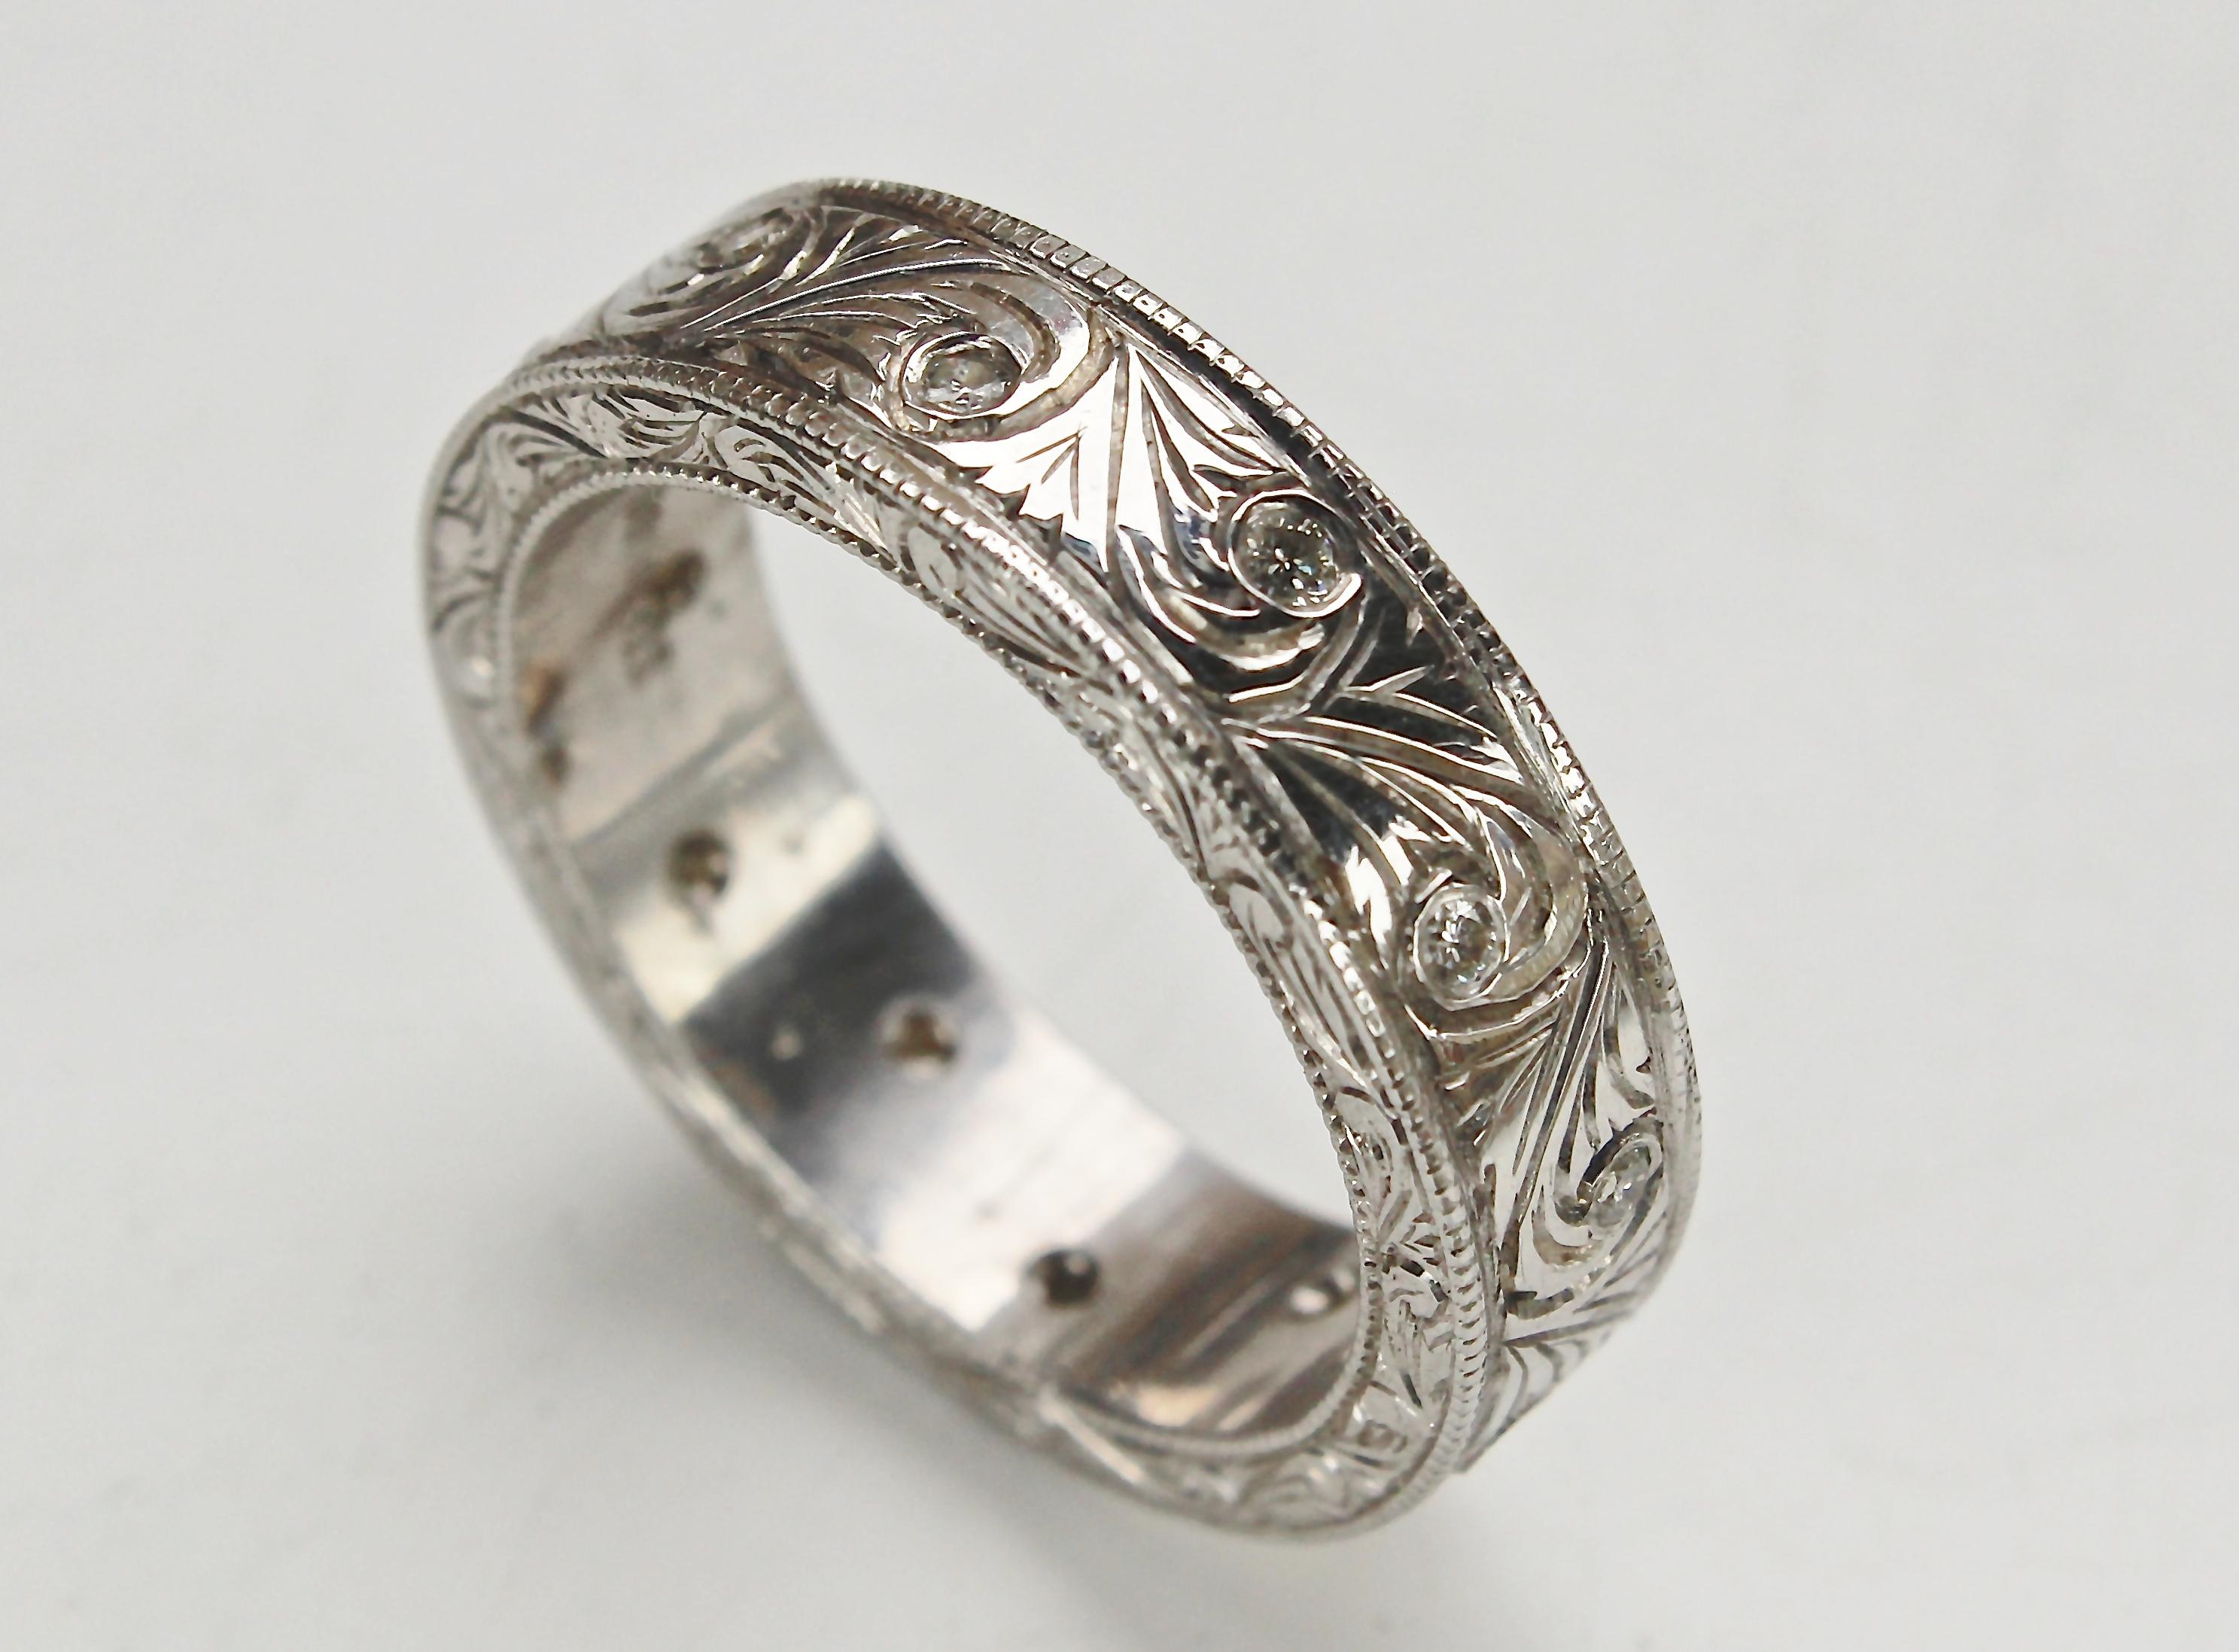 14K white gold mens vintage swirl hand carved ring